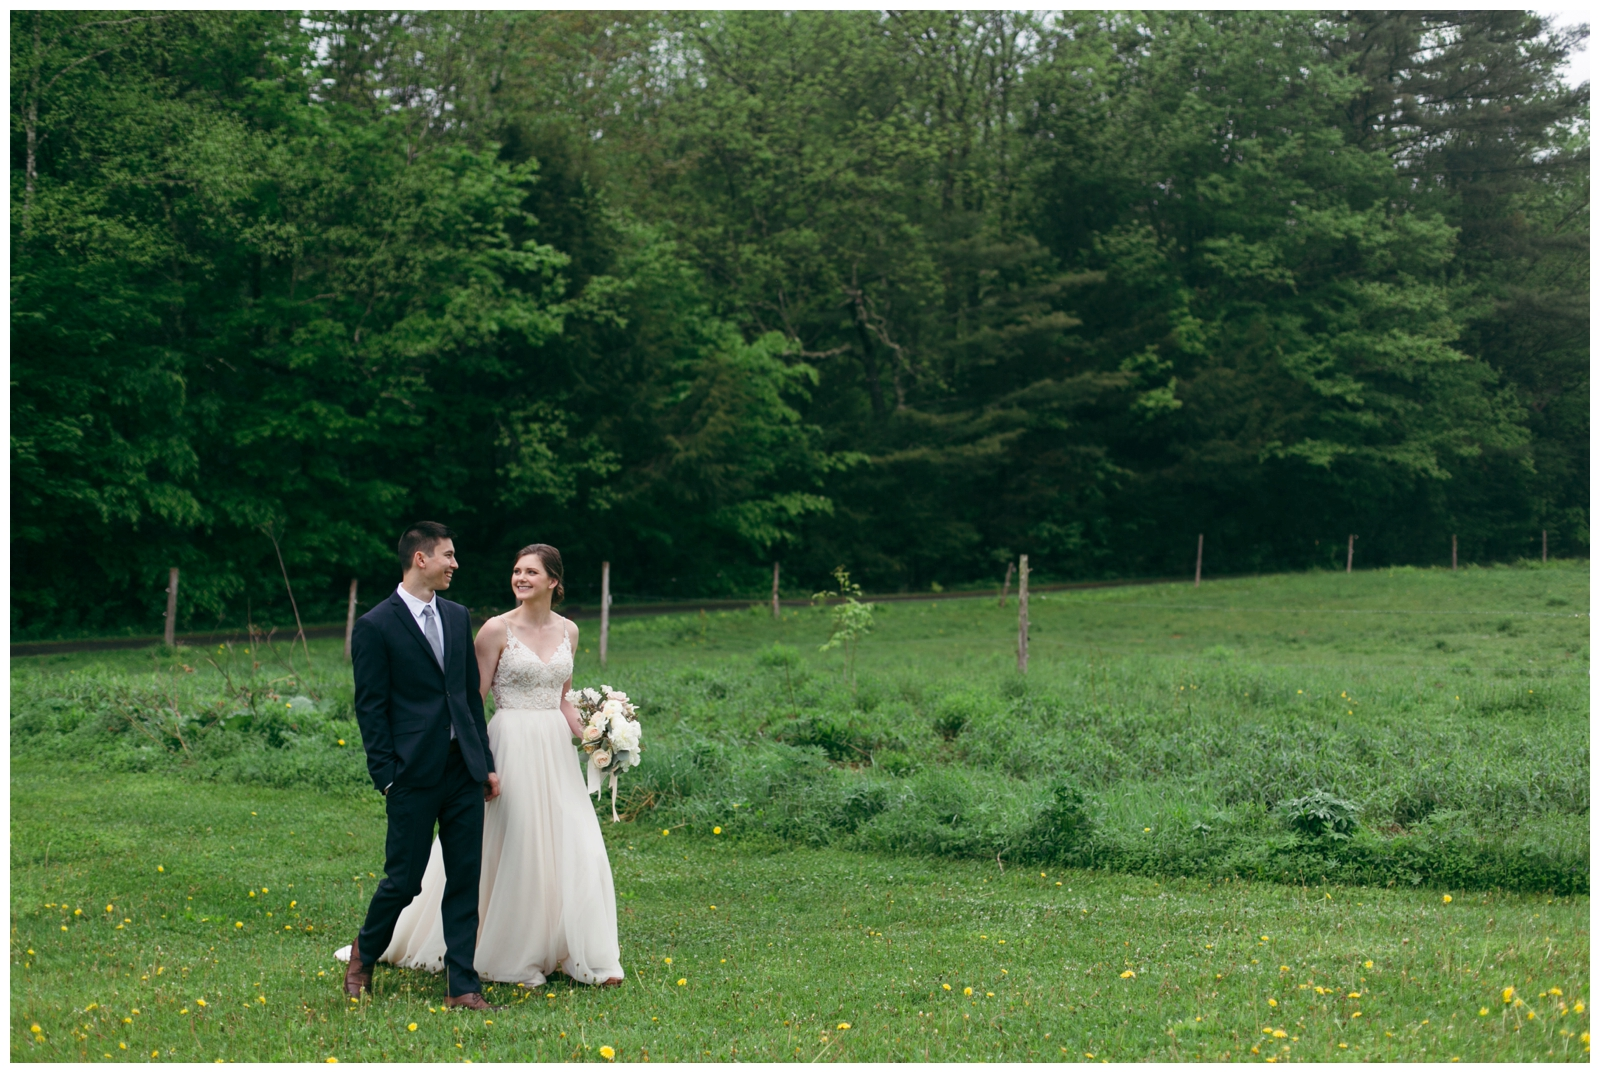 Vermont-Elopement-Topnotch-Stowe-Wedding-Bailey-Q-Photo-Boston-Wedding-Photographer-018.jpg